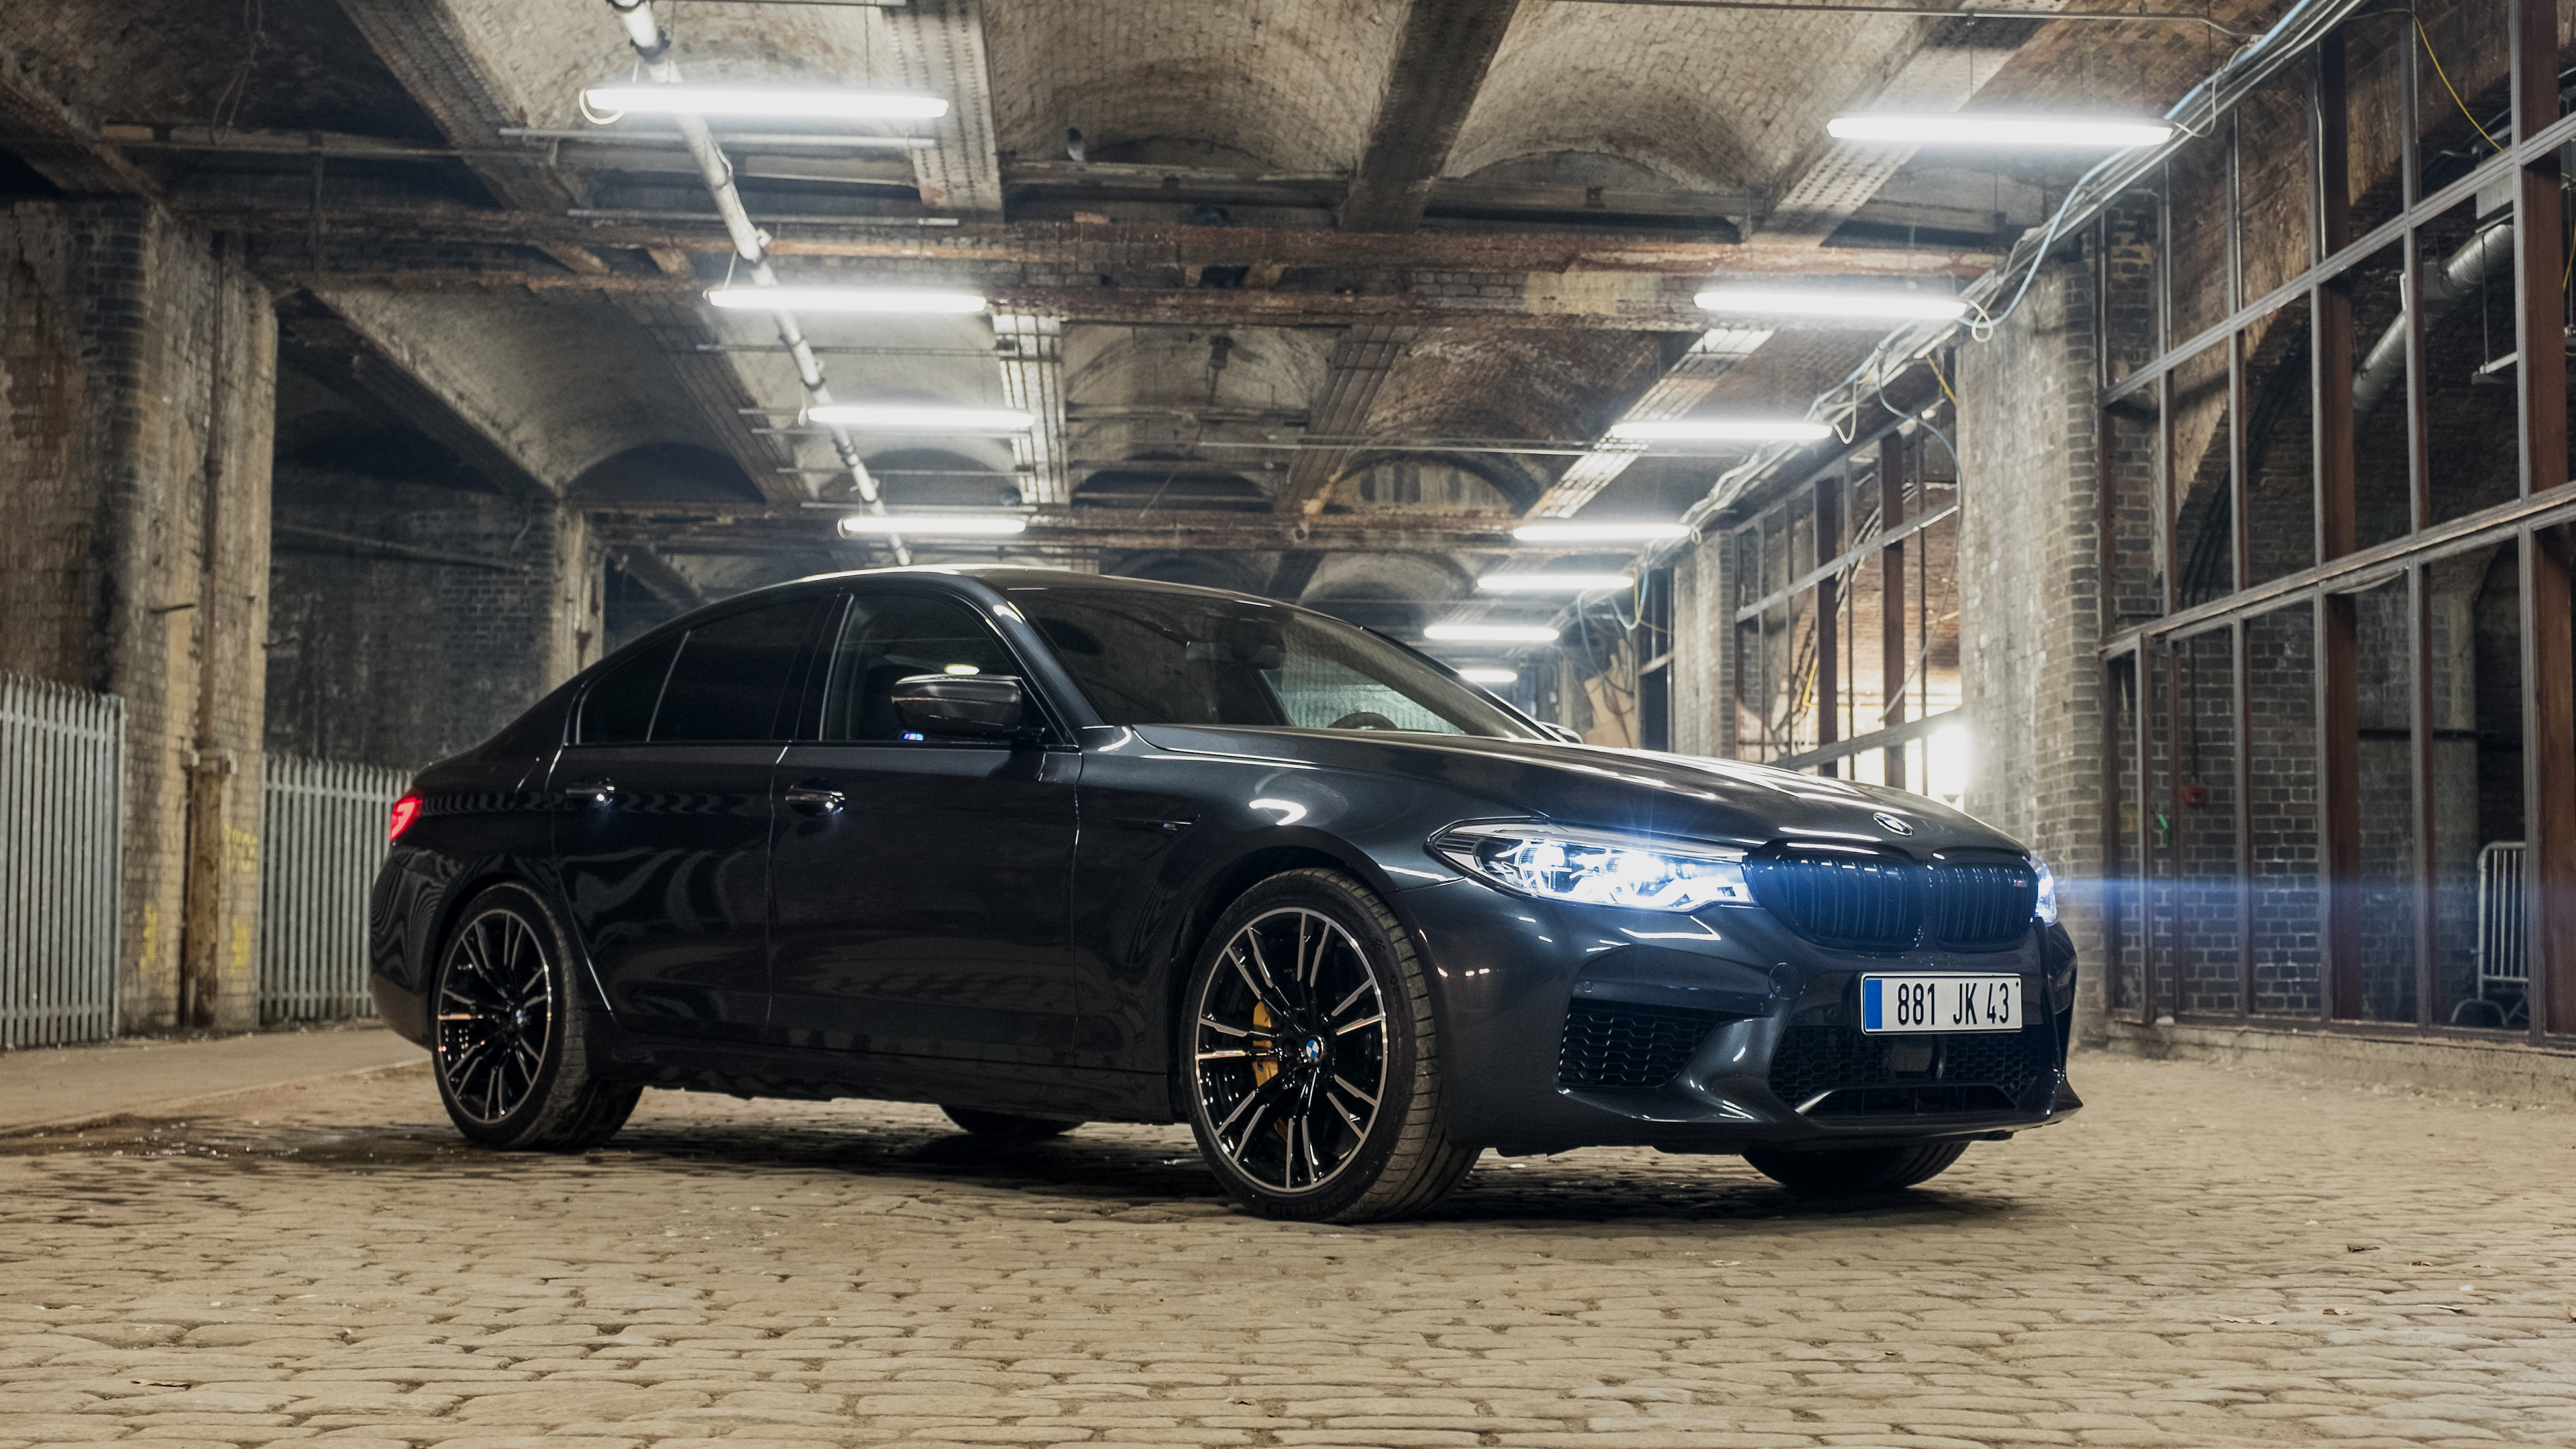 mission impossible fallout bmw m5 1537645241 - Mission Impossible Fallout Bmw M5 - movies wallpapers, mission impossible fallout wallpapers, mission impossible 6 wallpapers, hd-wallpapers, bmw m5 wallpapers, 5k wallpapers, 4k-wallpapers, 2018-movies-wallpapers